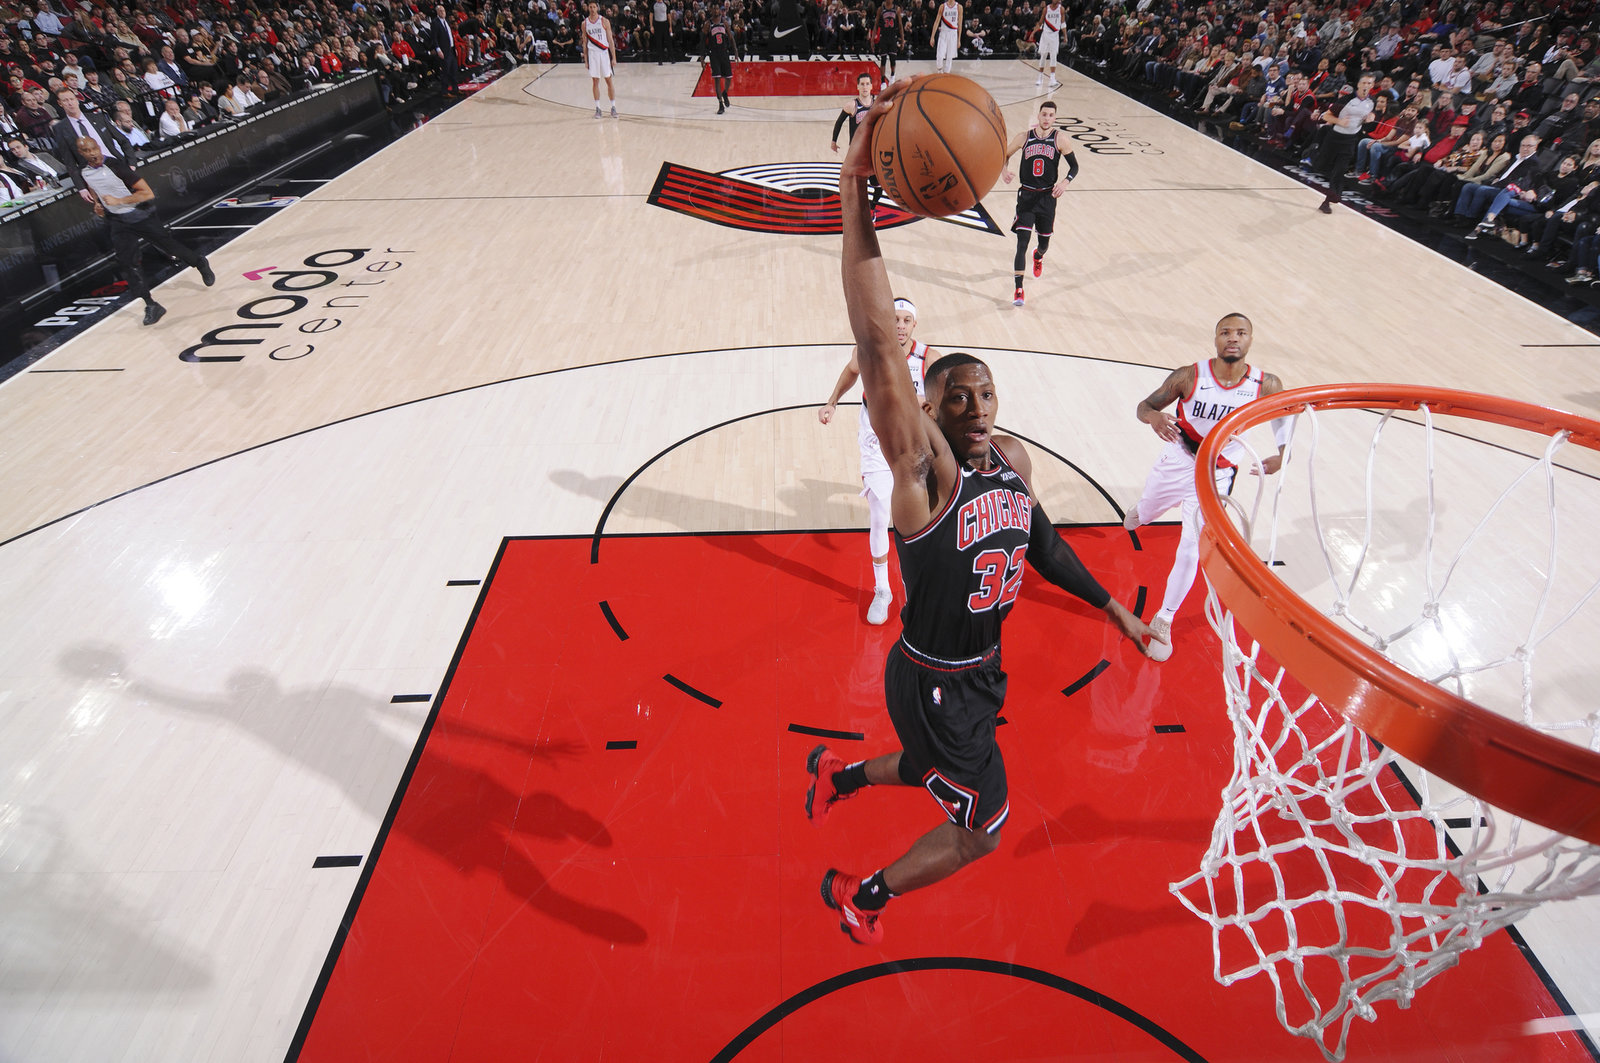 Kris Dunn drives to rim against the Portland Trailblazers.